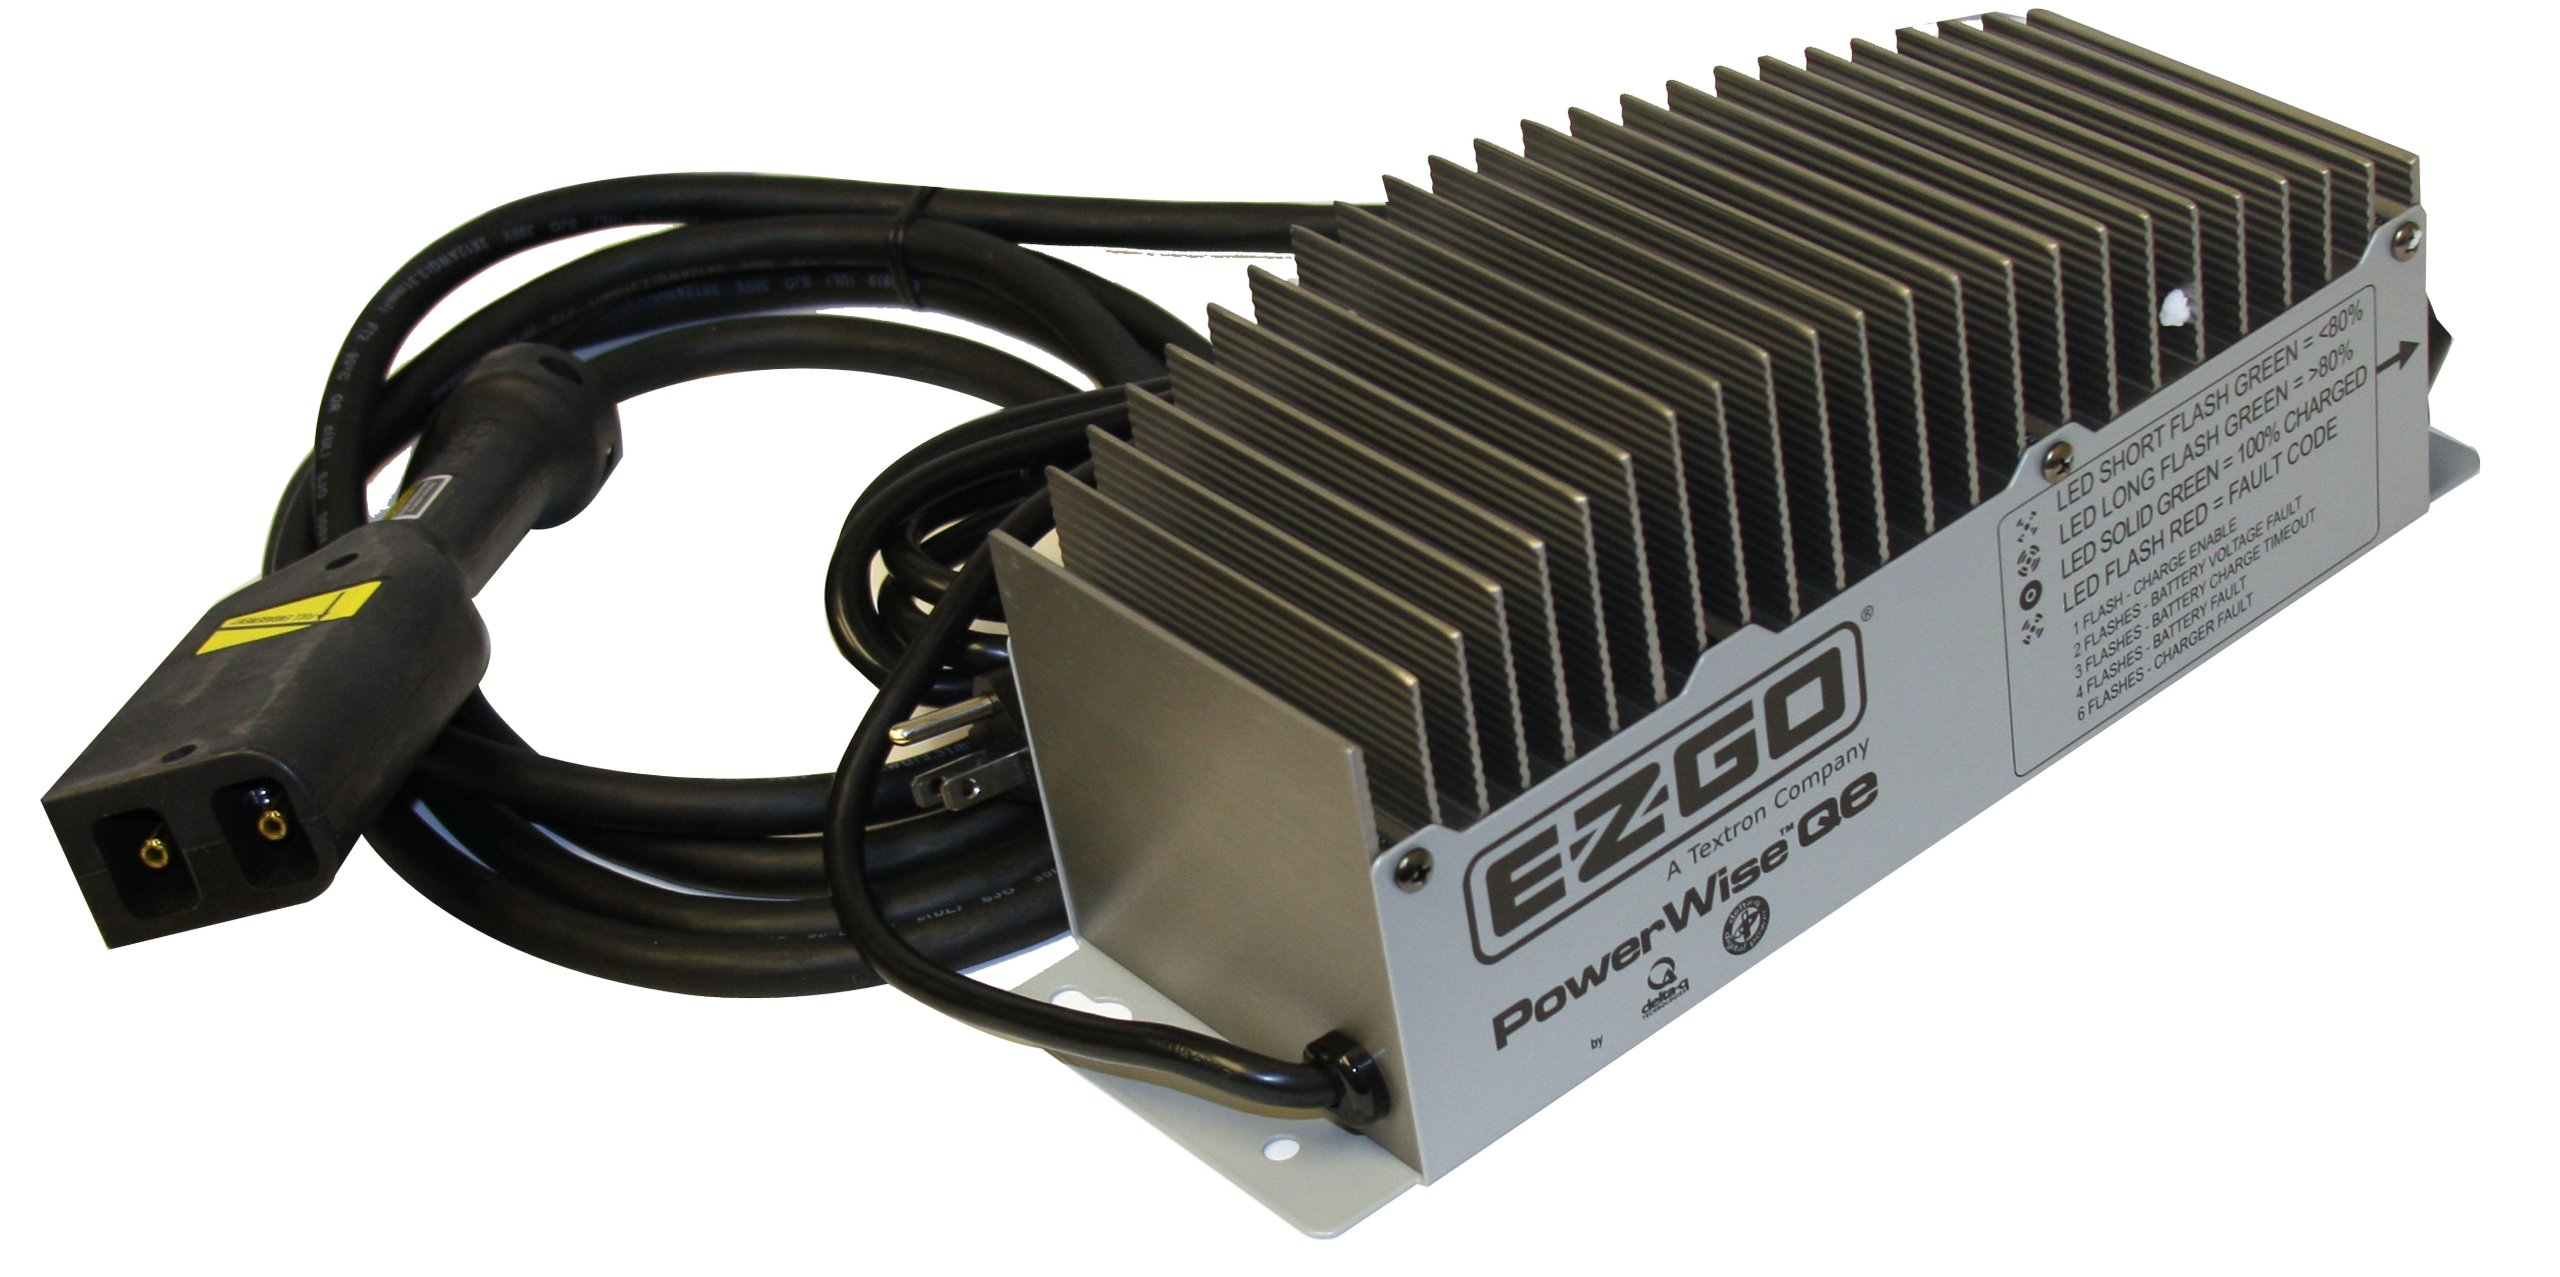 EZGO Powerwise QE Charger with 18-Inch DC Cord, 36-Volt, 16-Amp  - PF10820